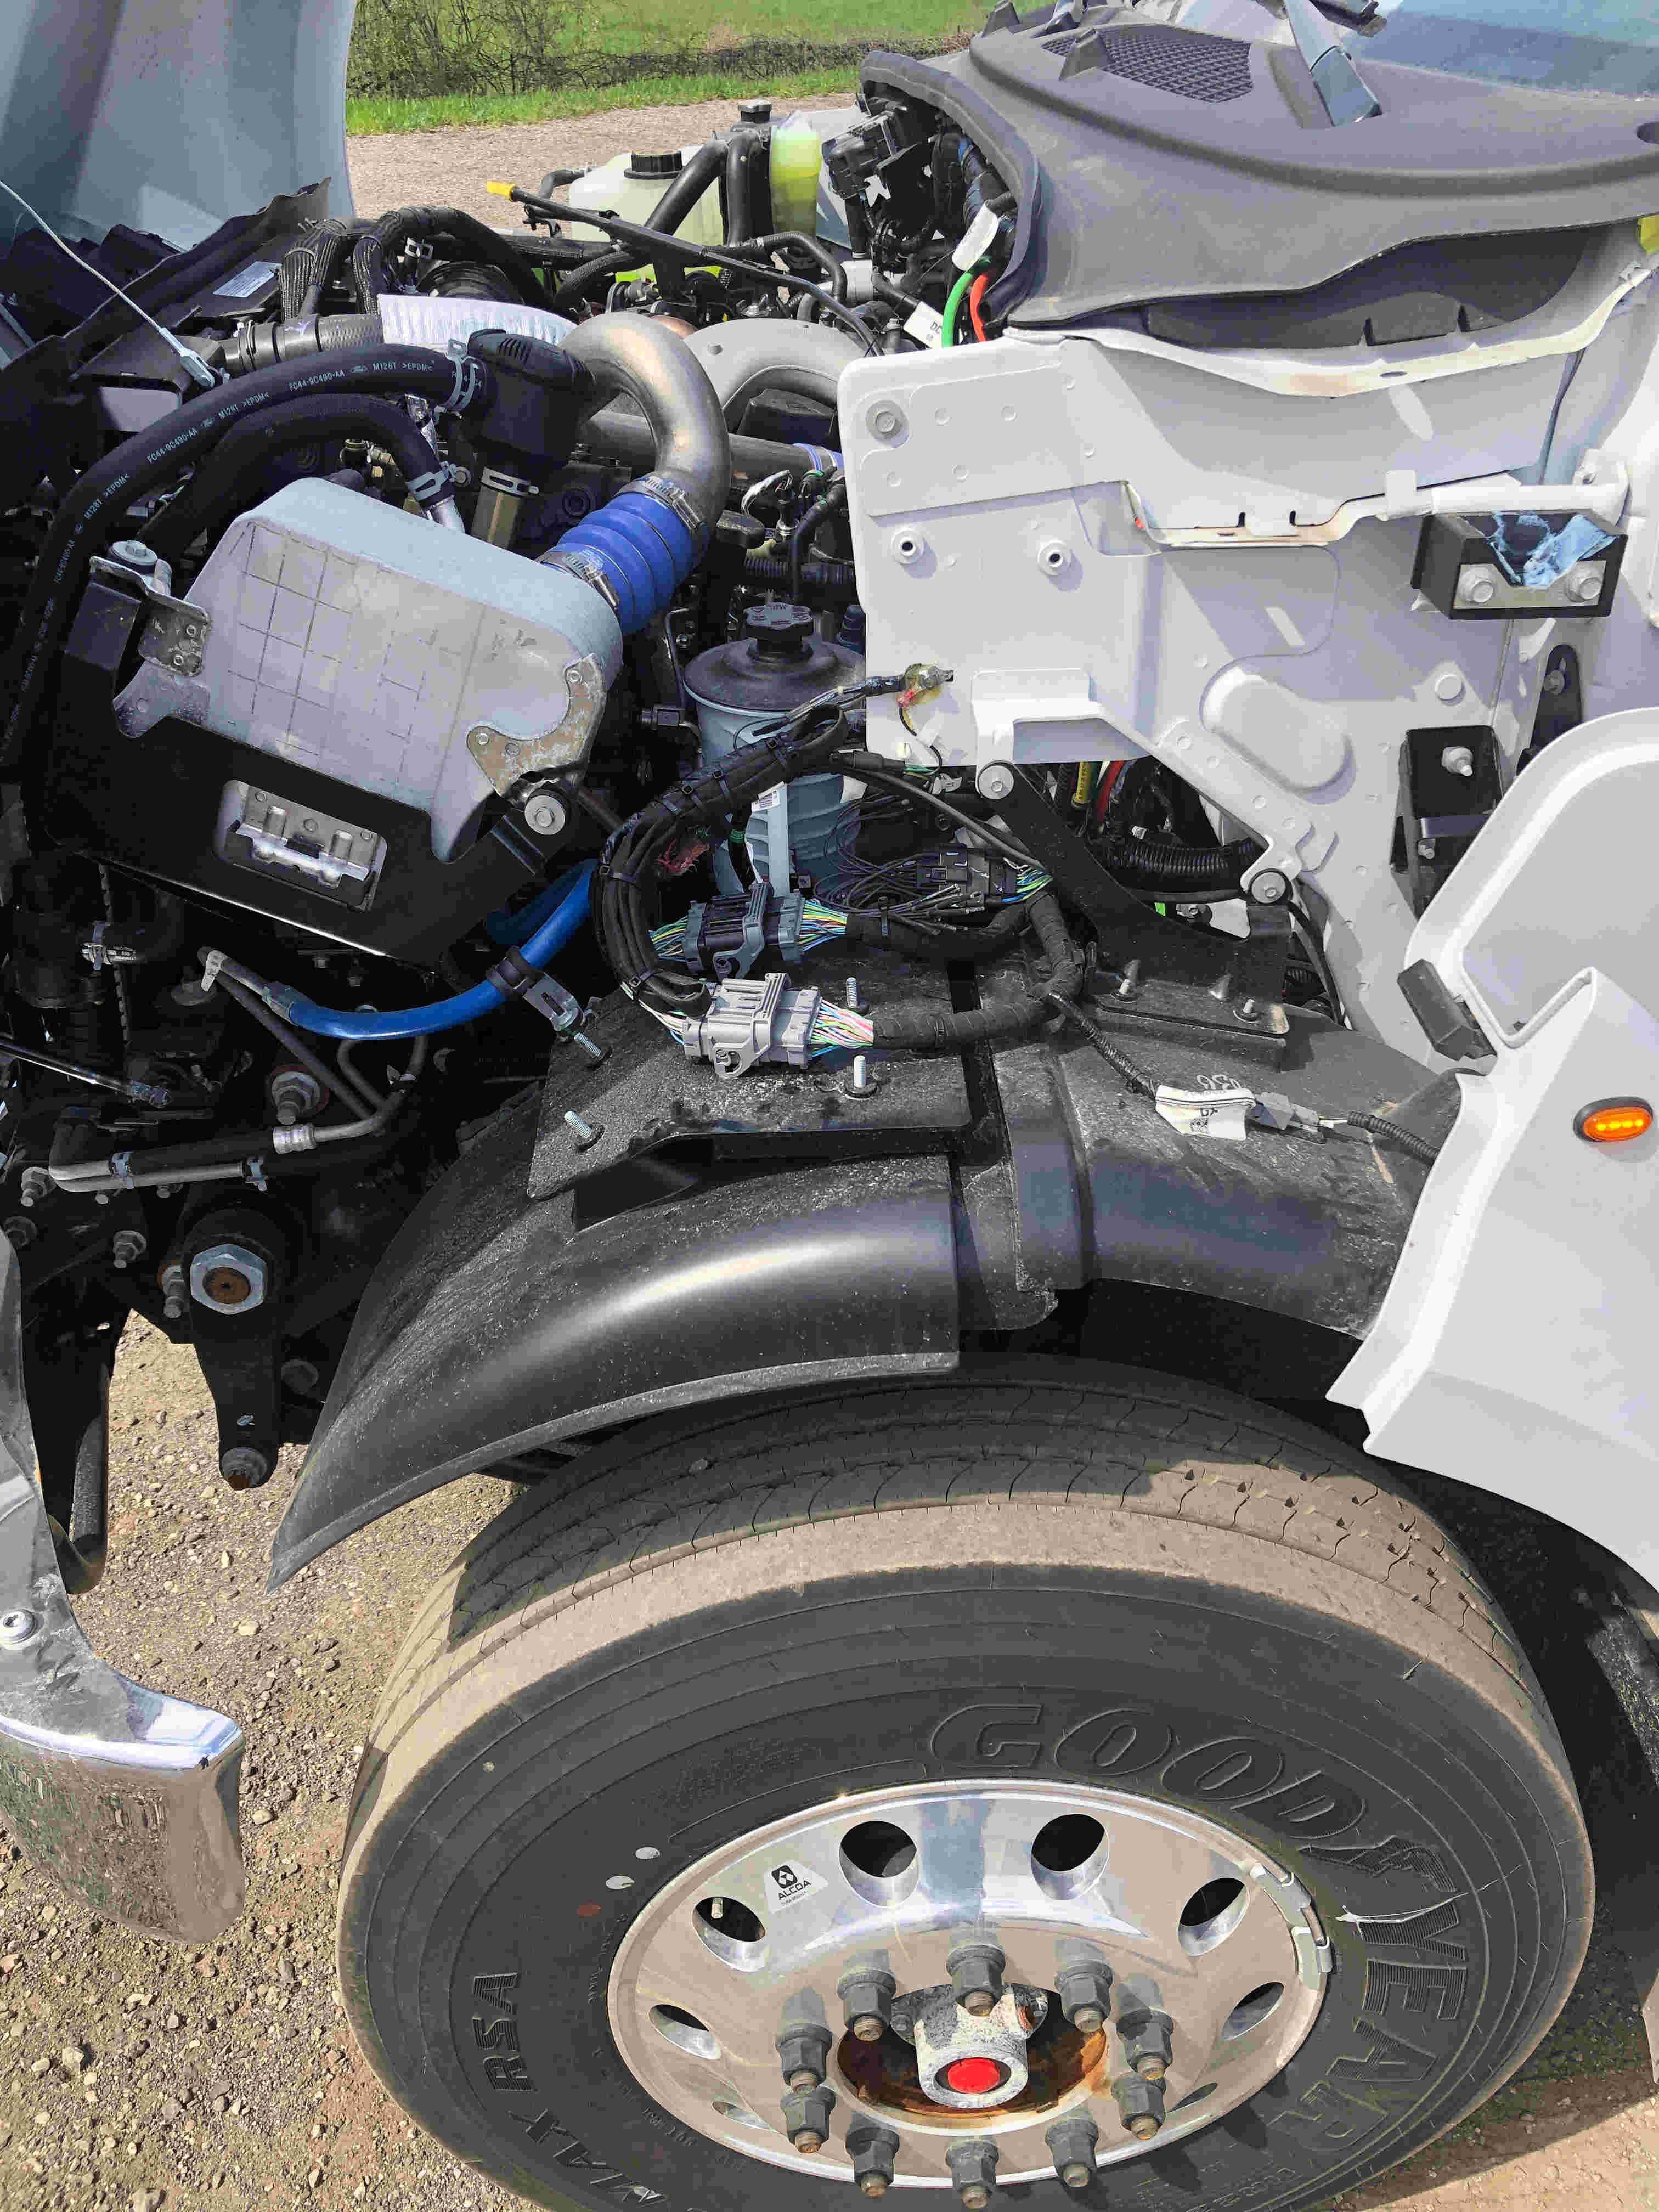 2021 Ford F750 12 On Trux System White (8)